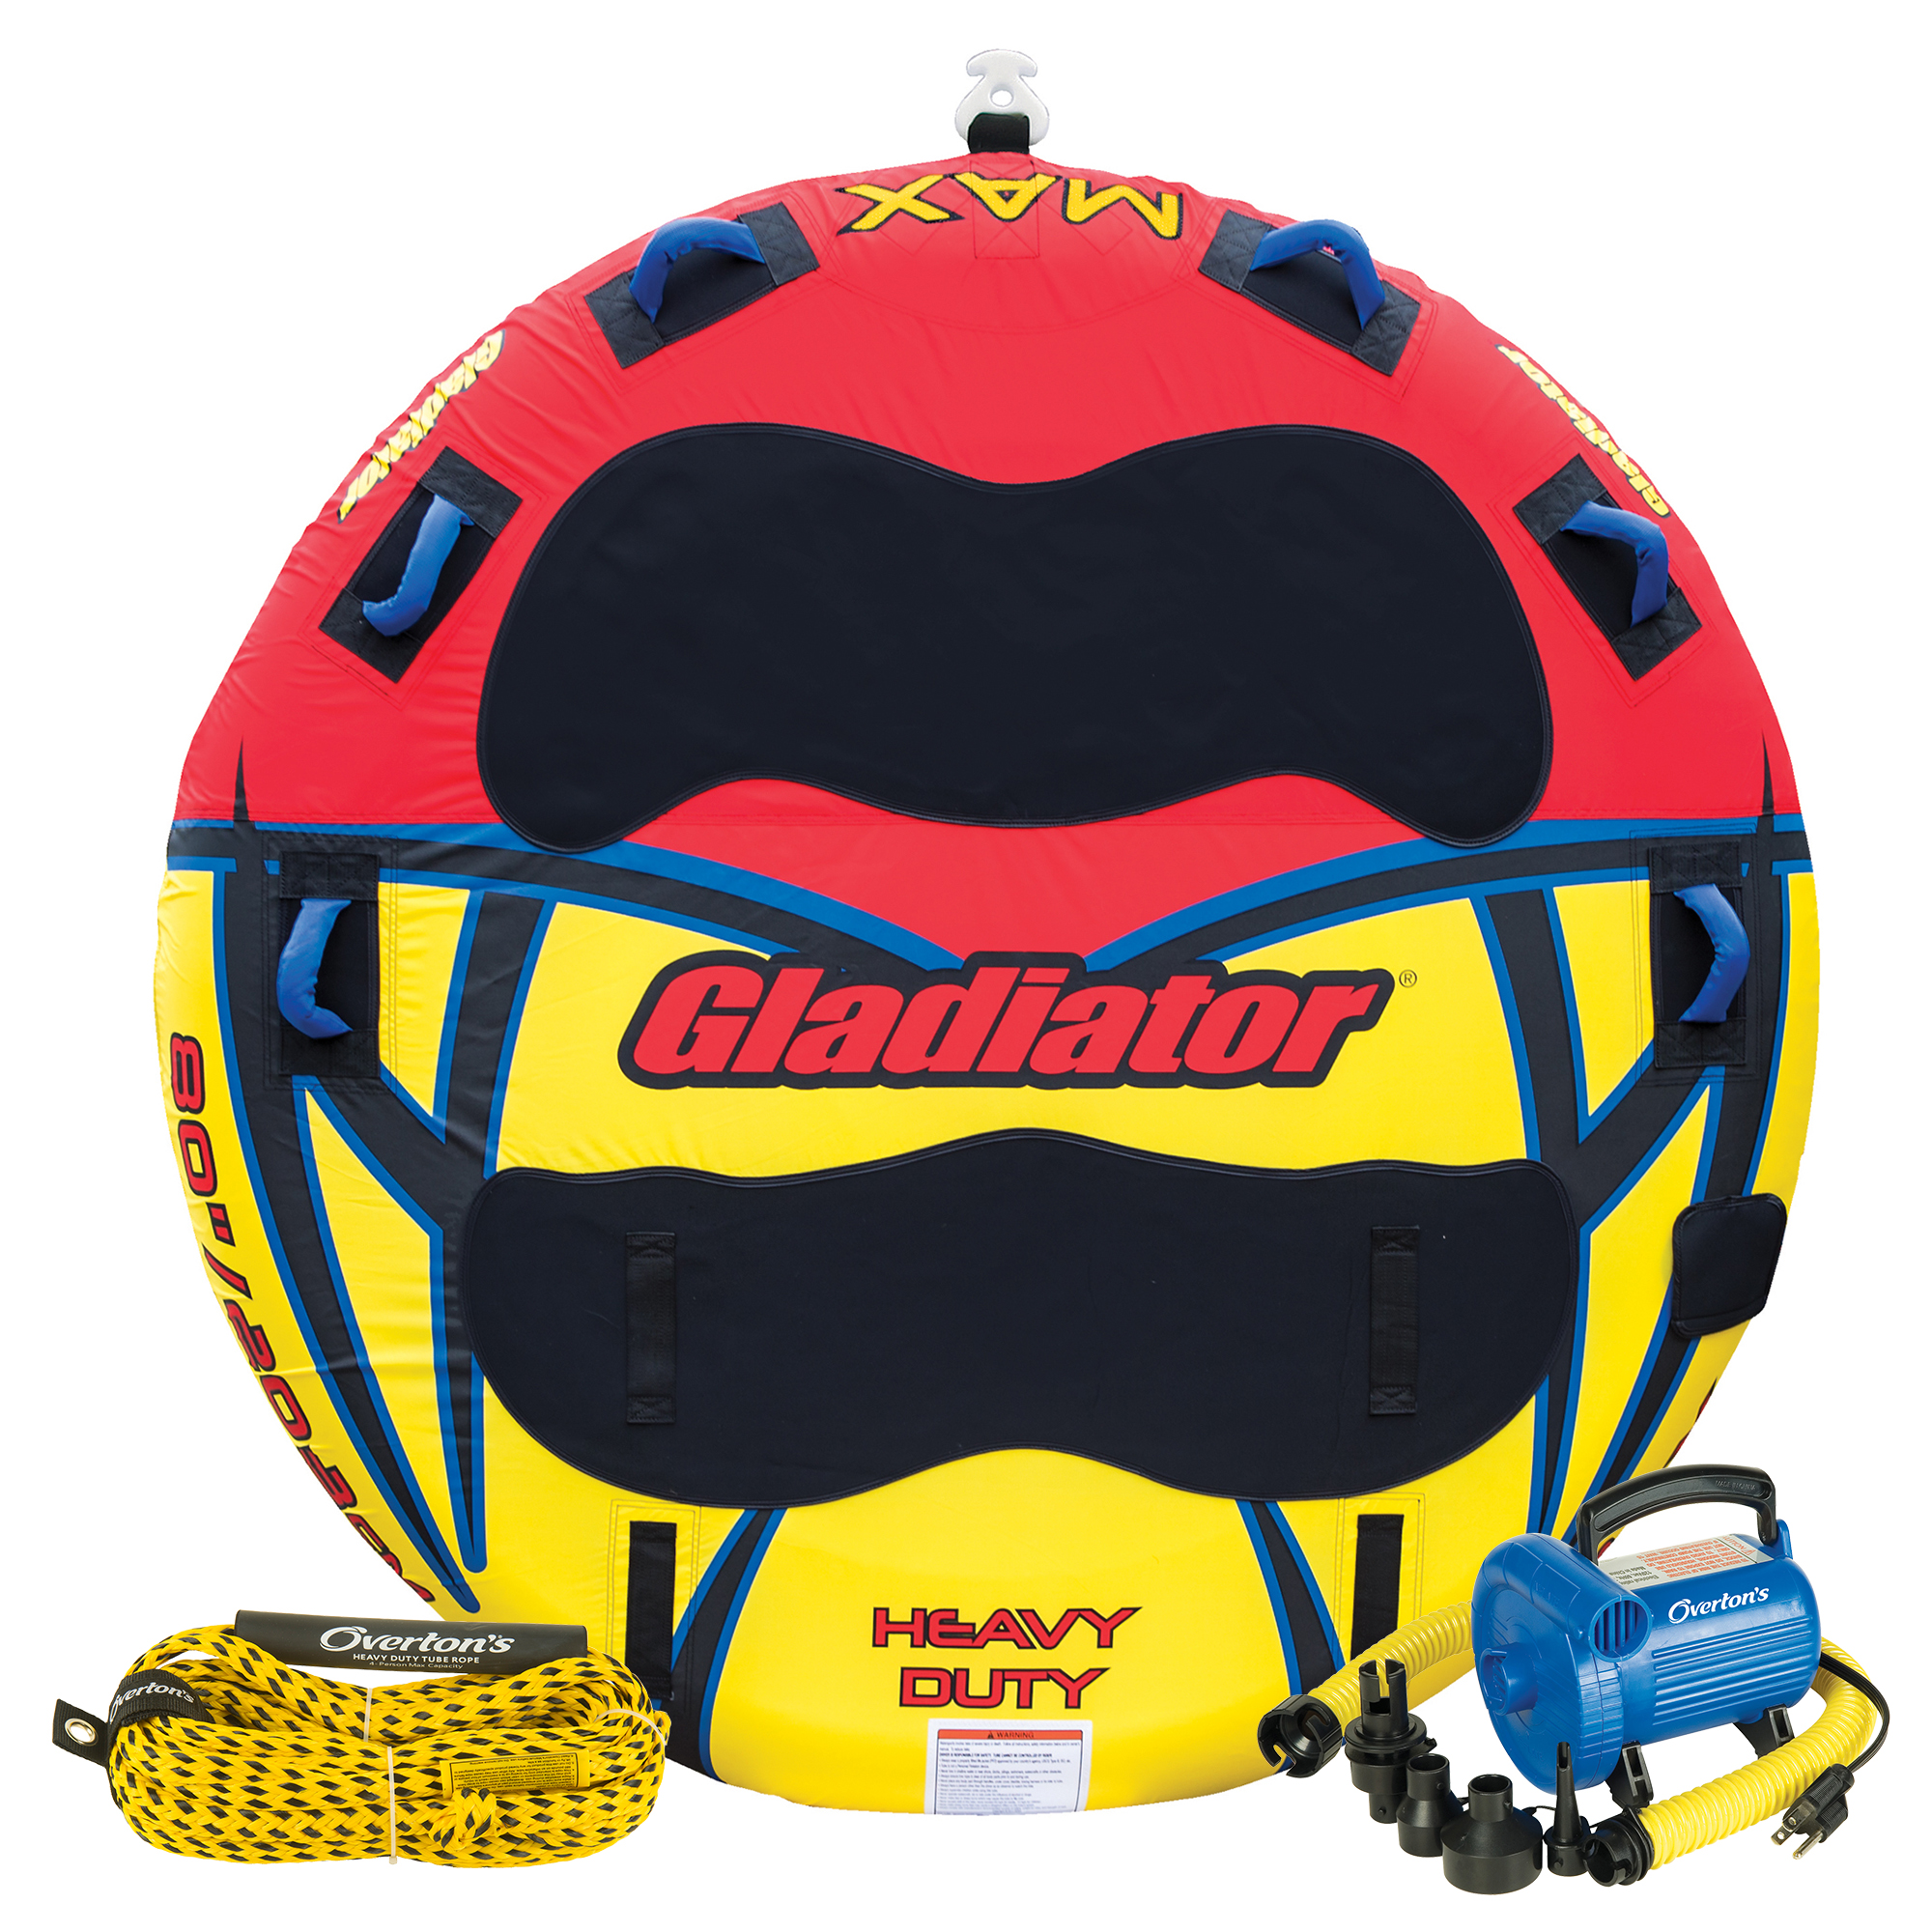 Gladiator Max 3-Rider Deck Rider Towable Tube Package